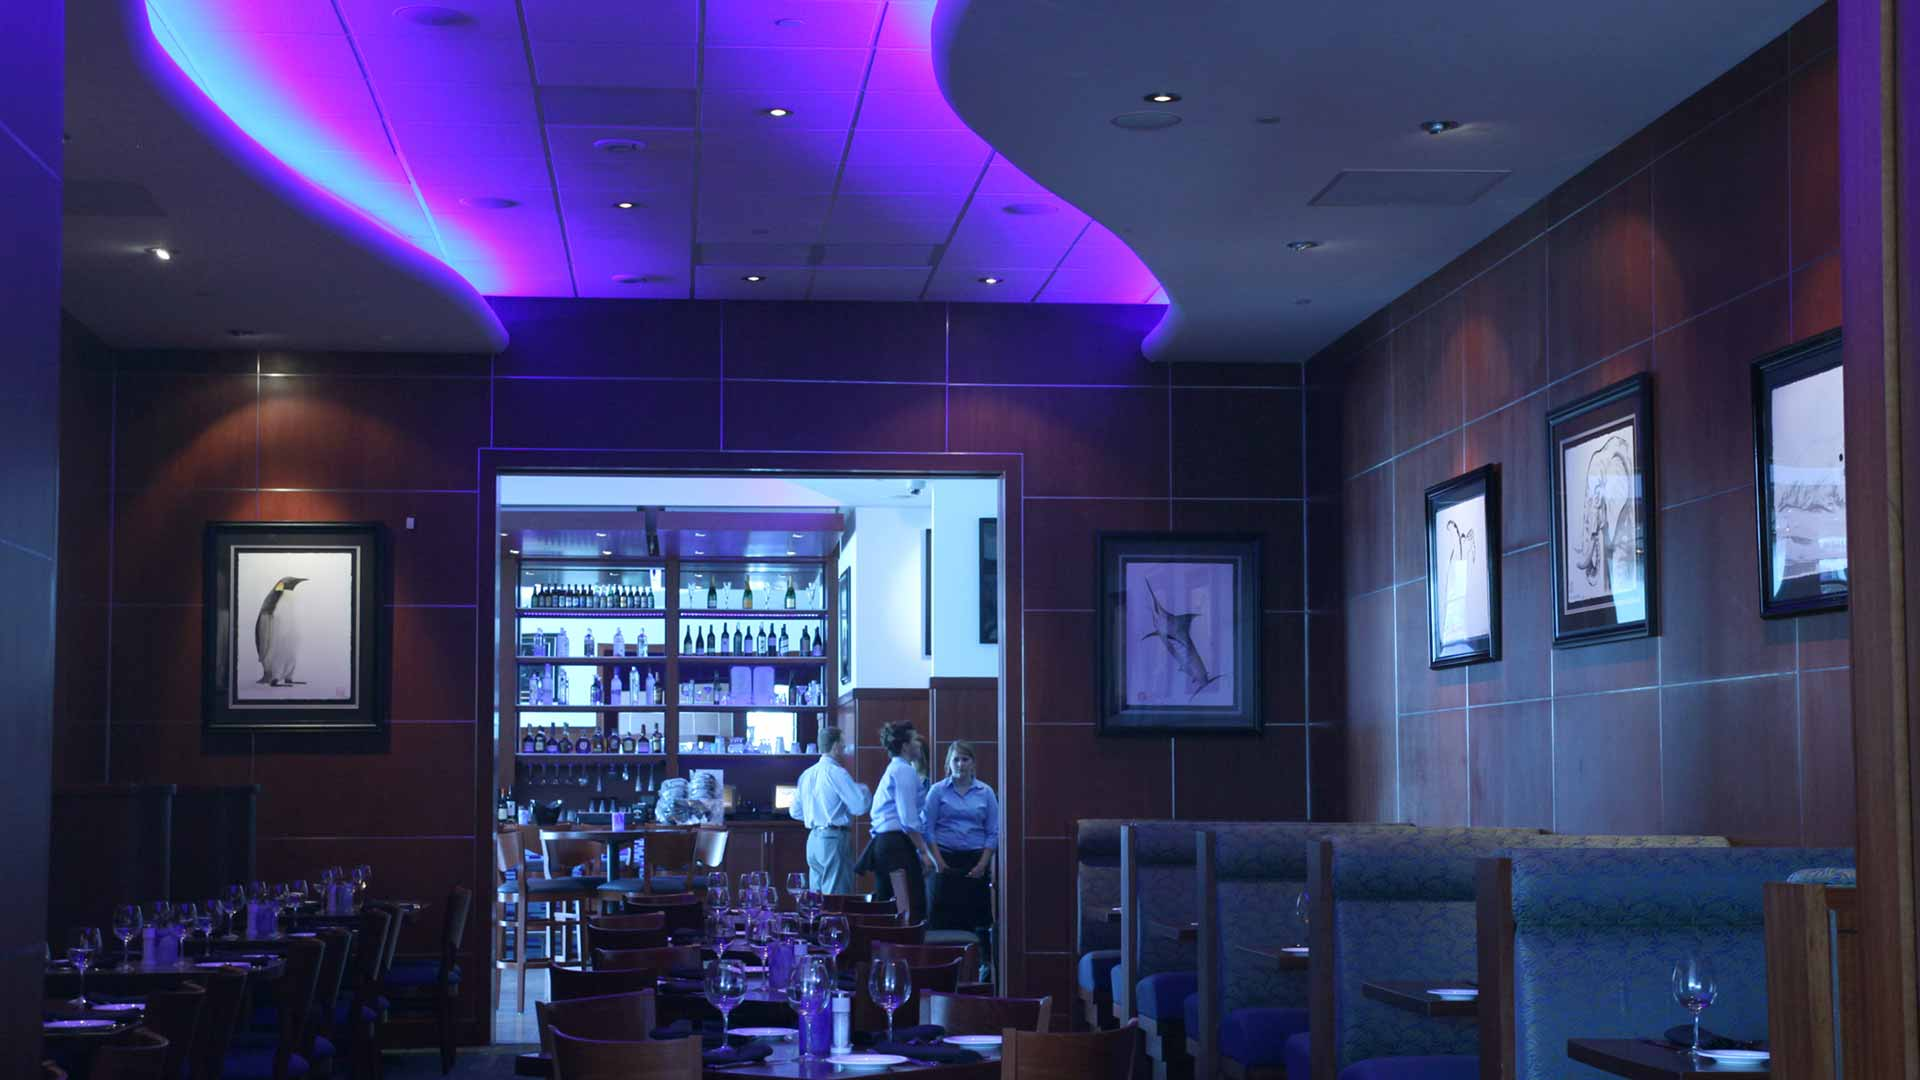 Photo of the VIP dining area in a restaurant with custom neon lighting.